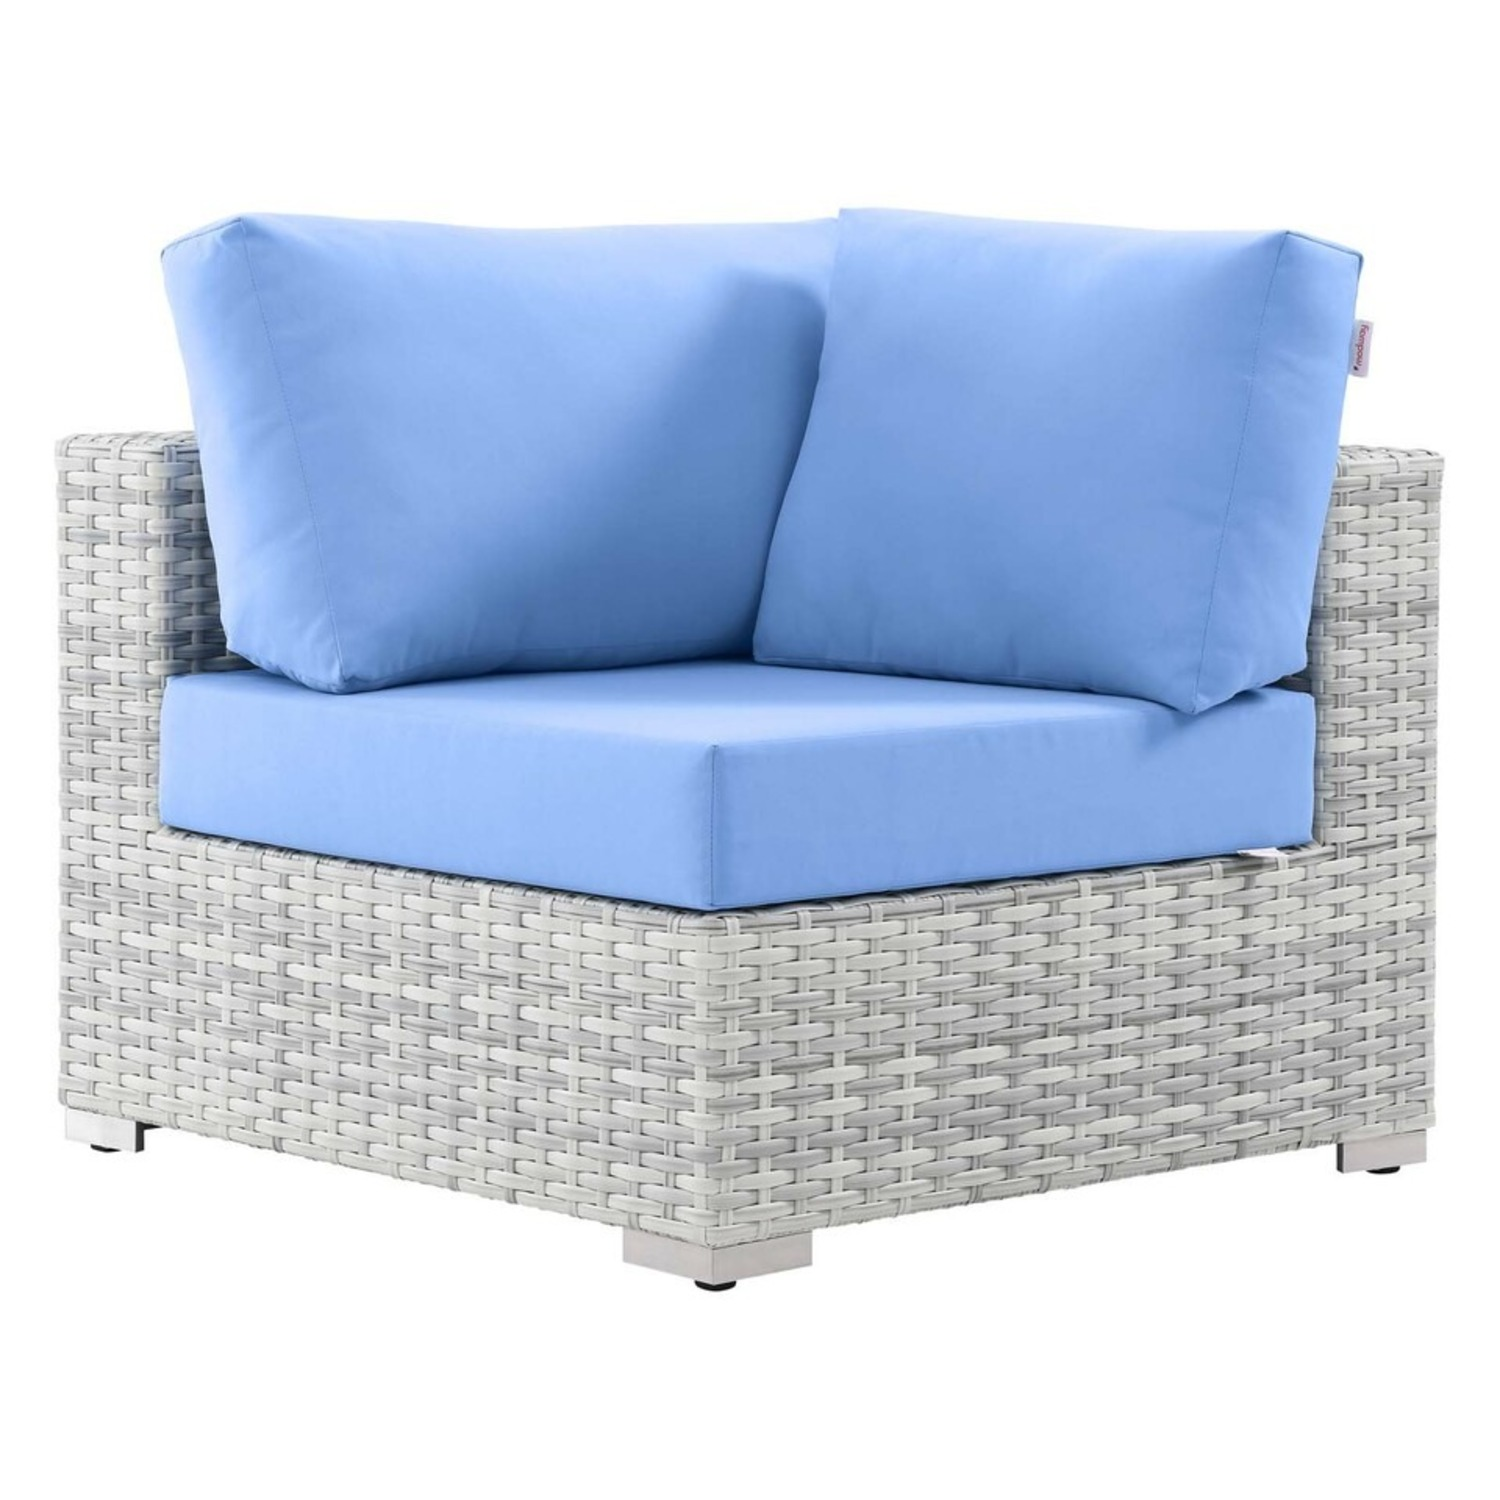 6-Piece Outdoor Patio Sectional In Light Blue Seat - image-9